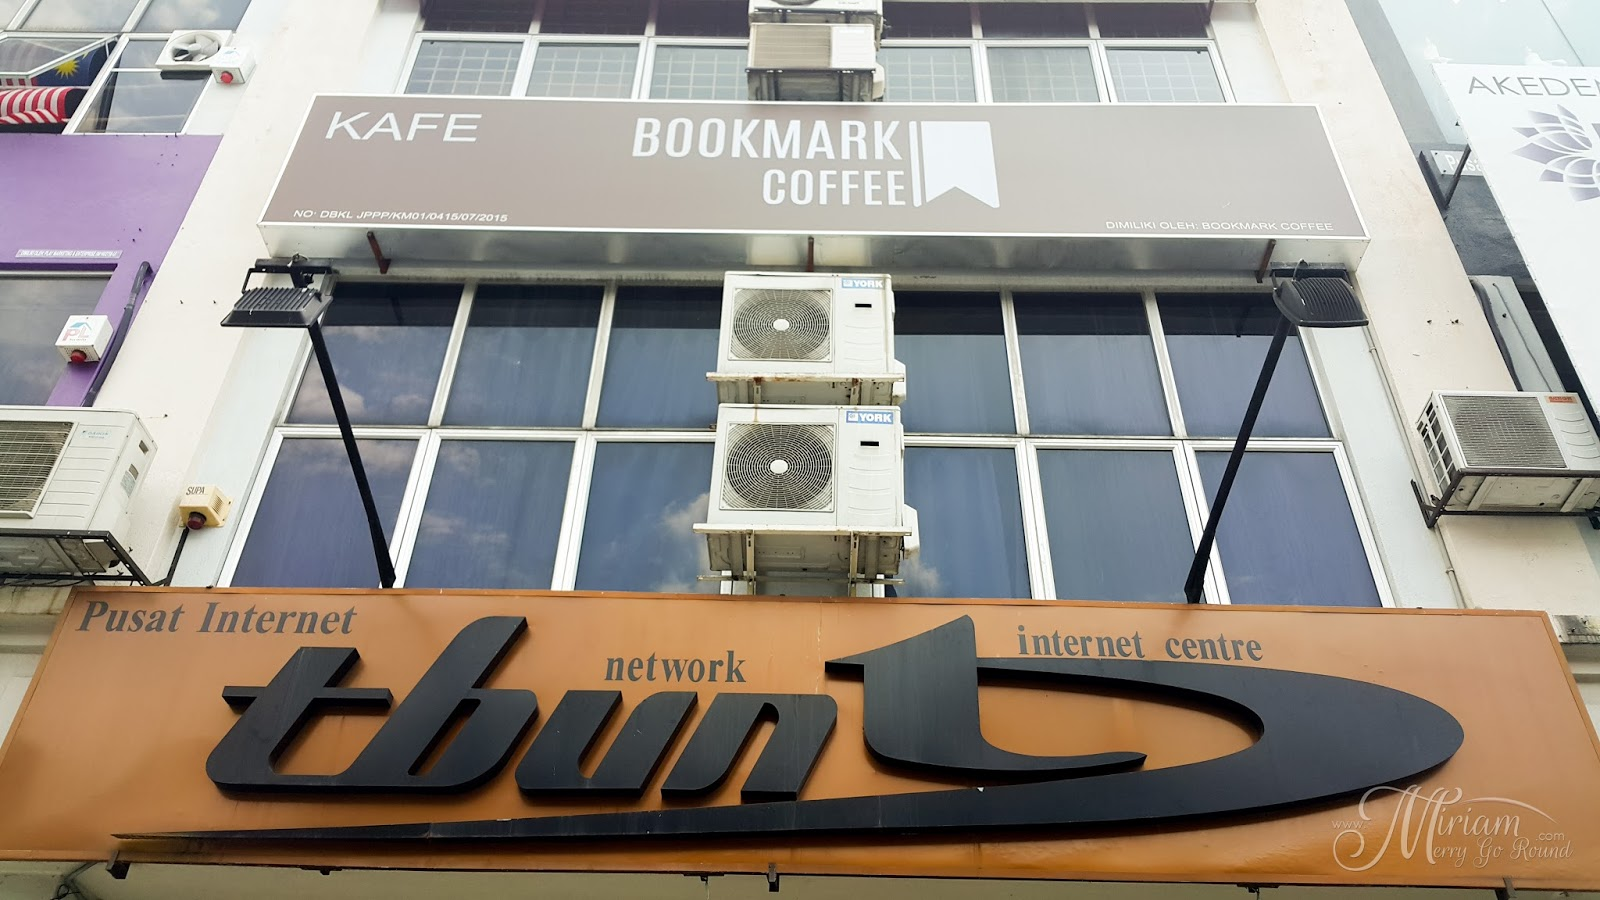 Bookmark Coffee Cheras